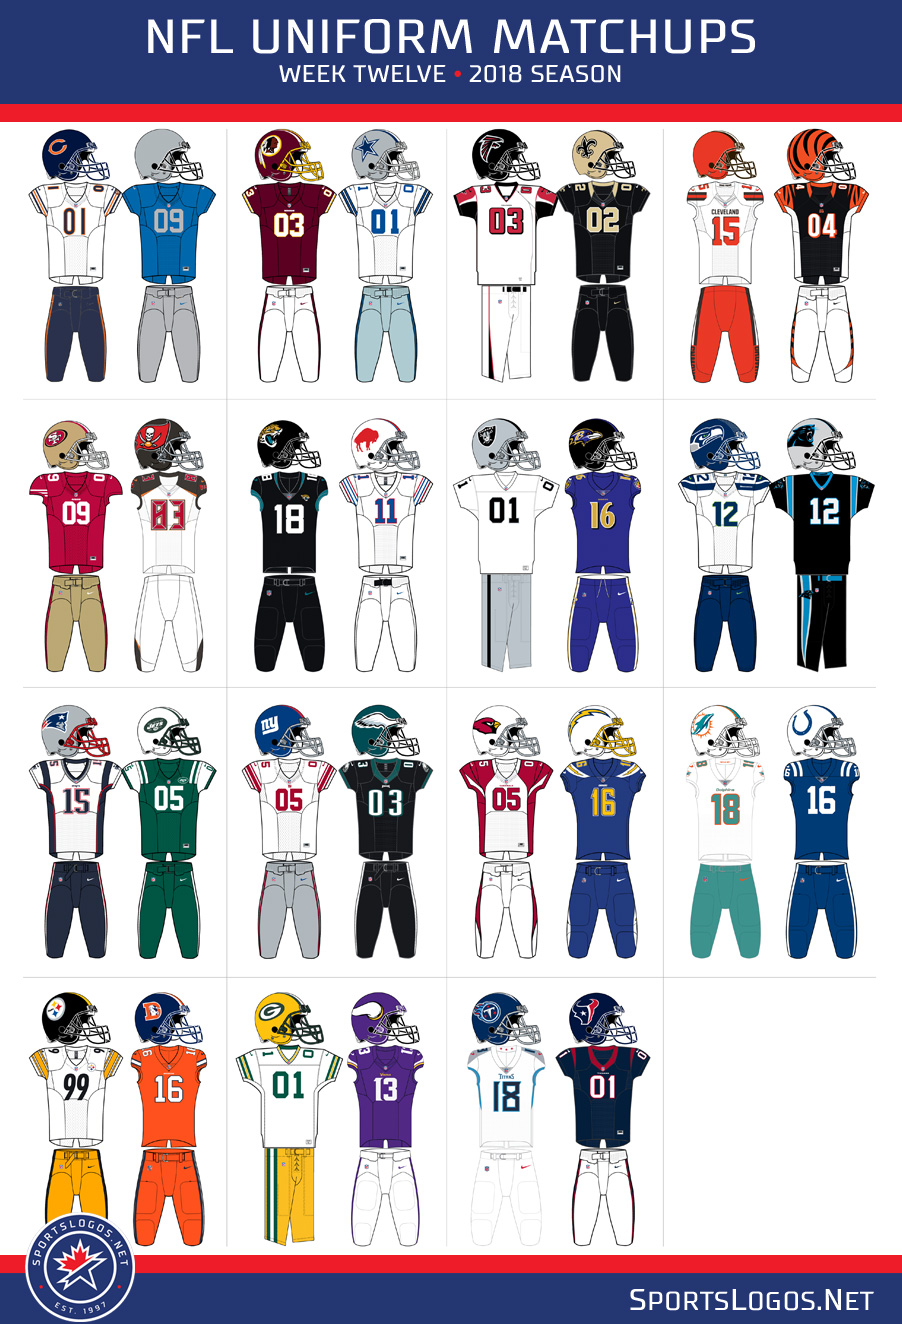 c7d73cd8e Here s a look at all your 2018 Season Week 12 uniform matchups in the NFL